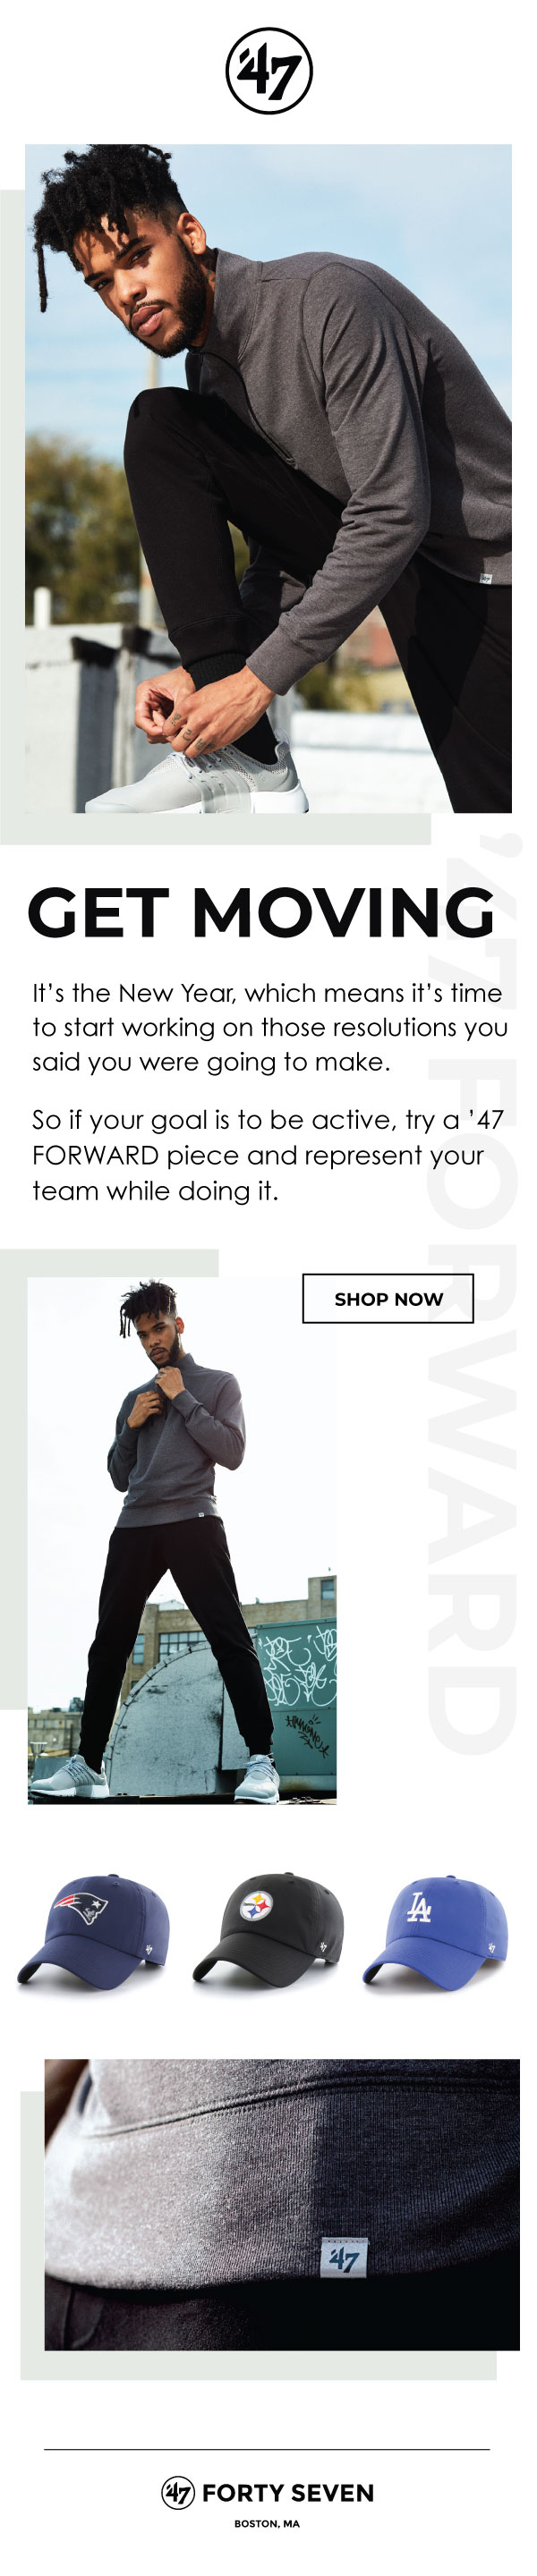 If your goal is to be active, try a '47 FORWARD piece and represent your team while doing it.